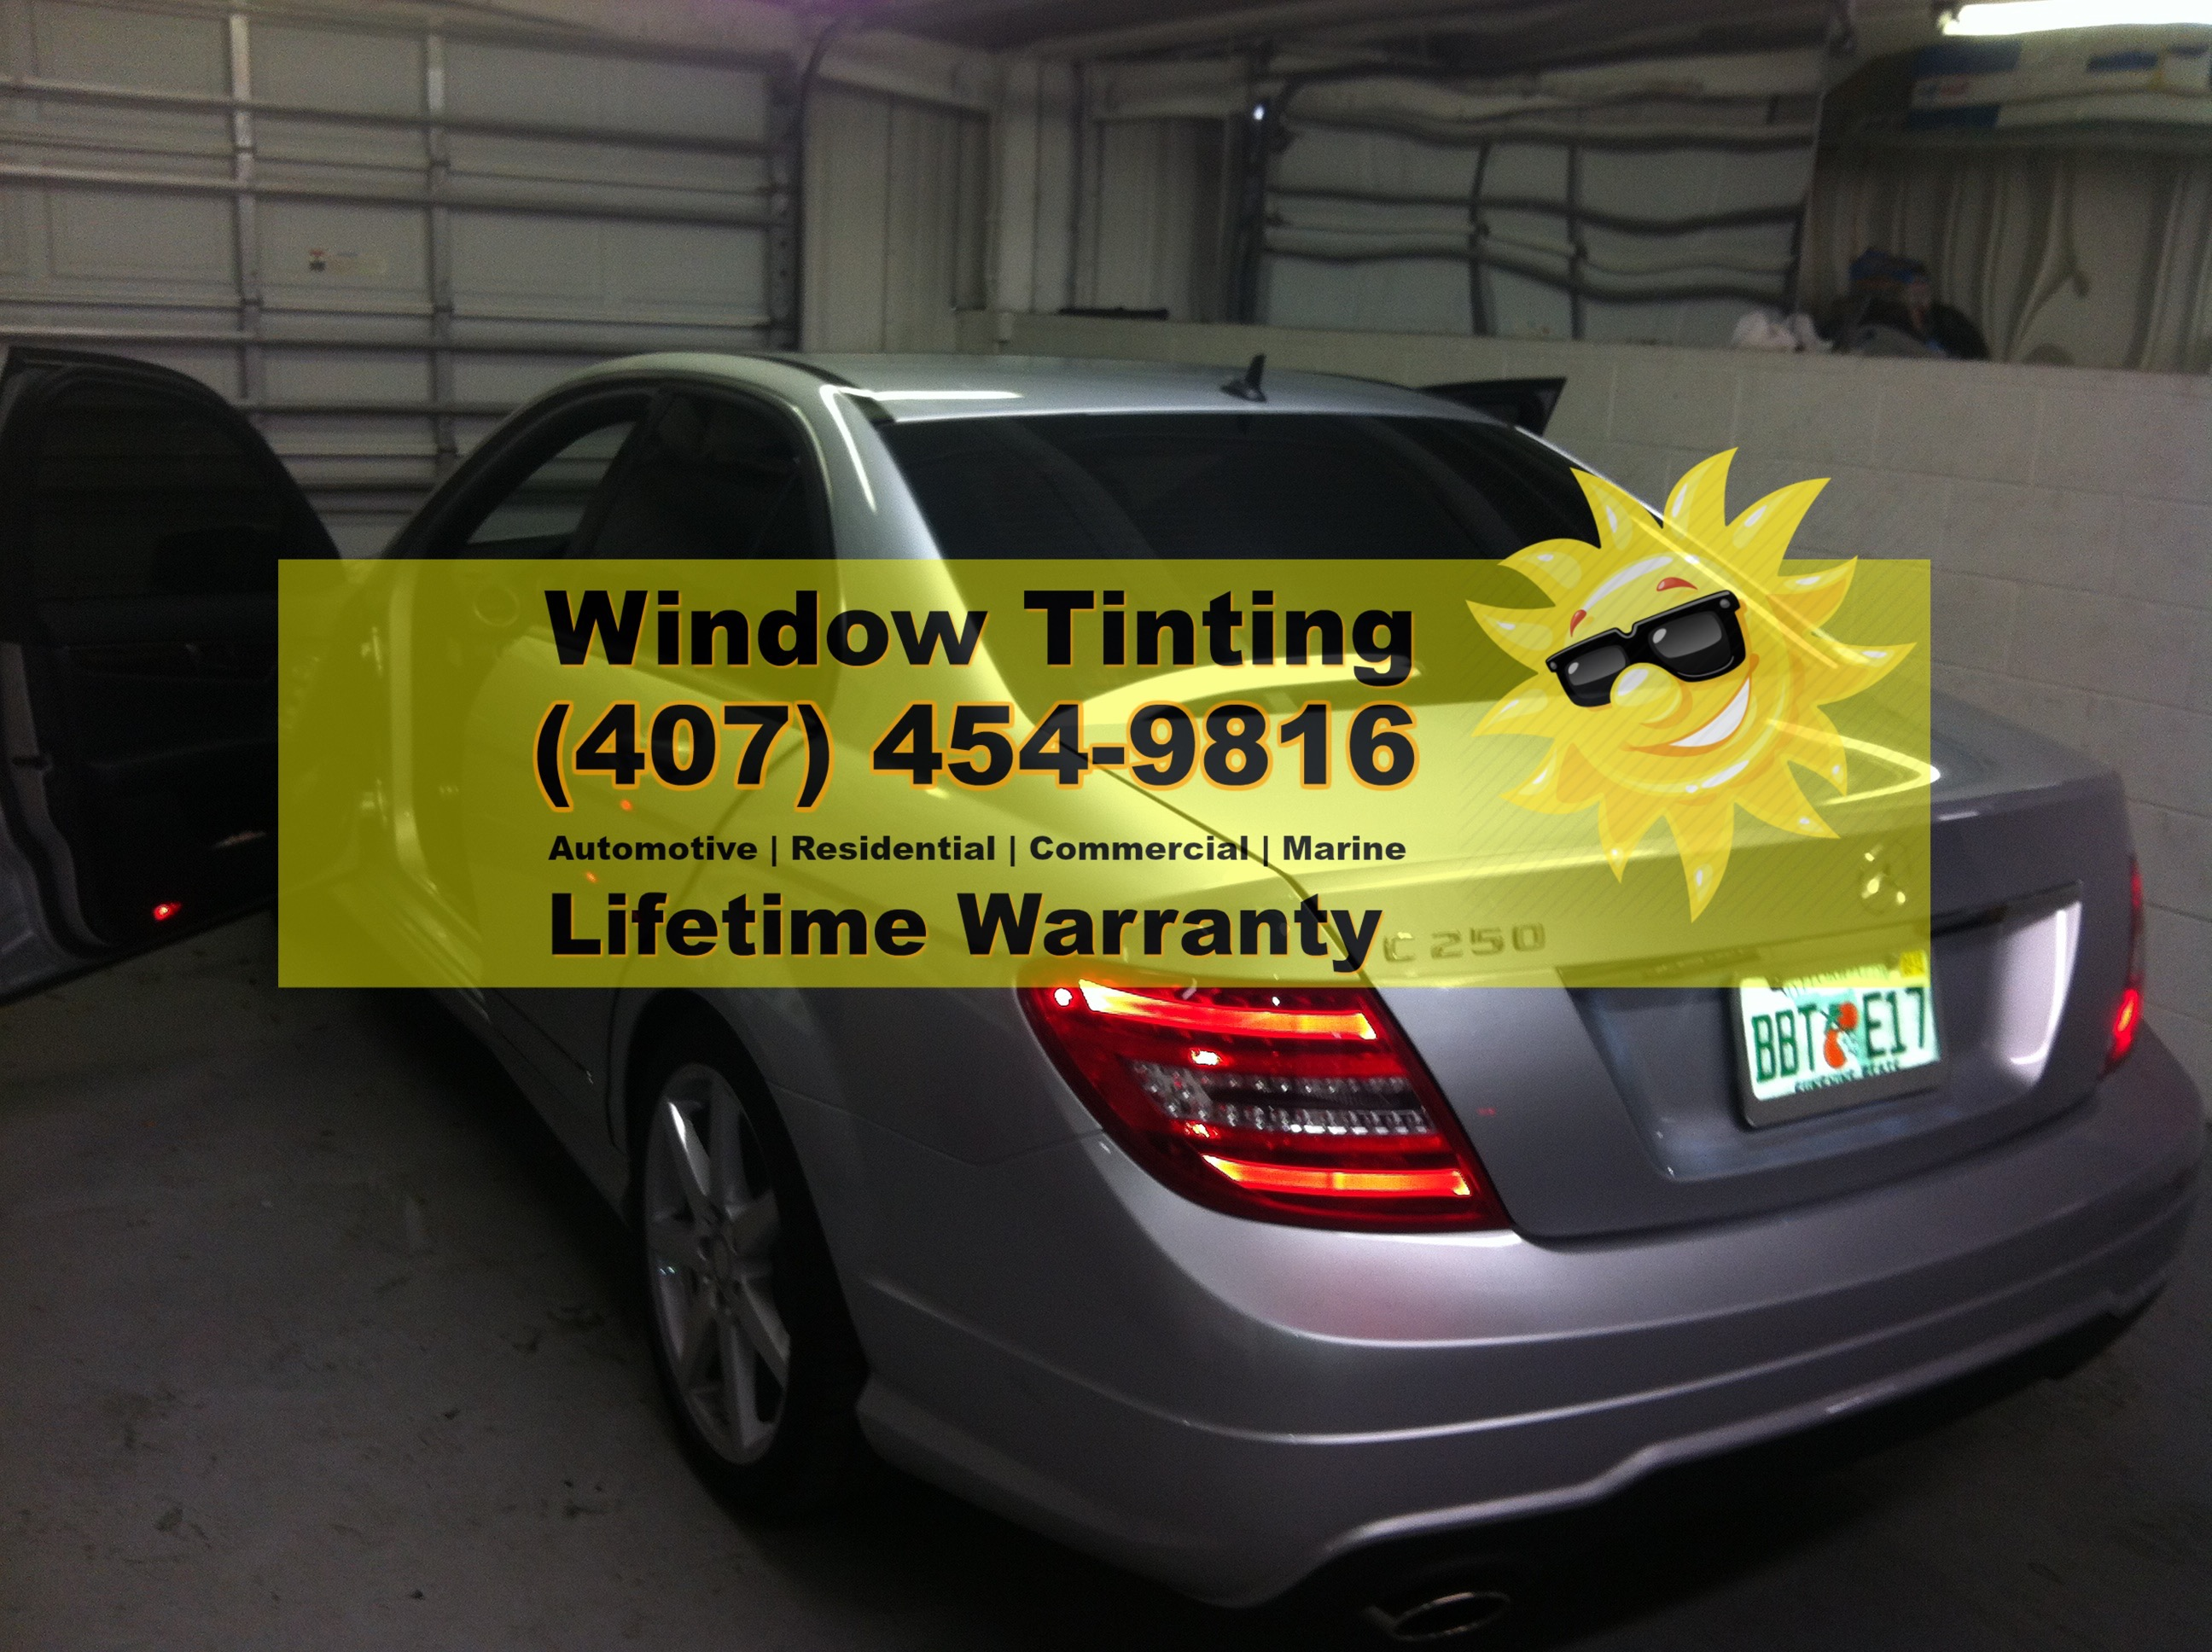 Mercedes Window Tint Orlando